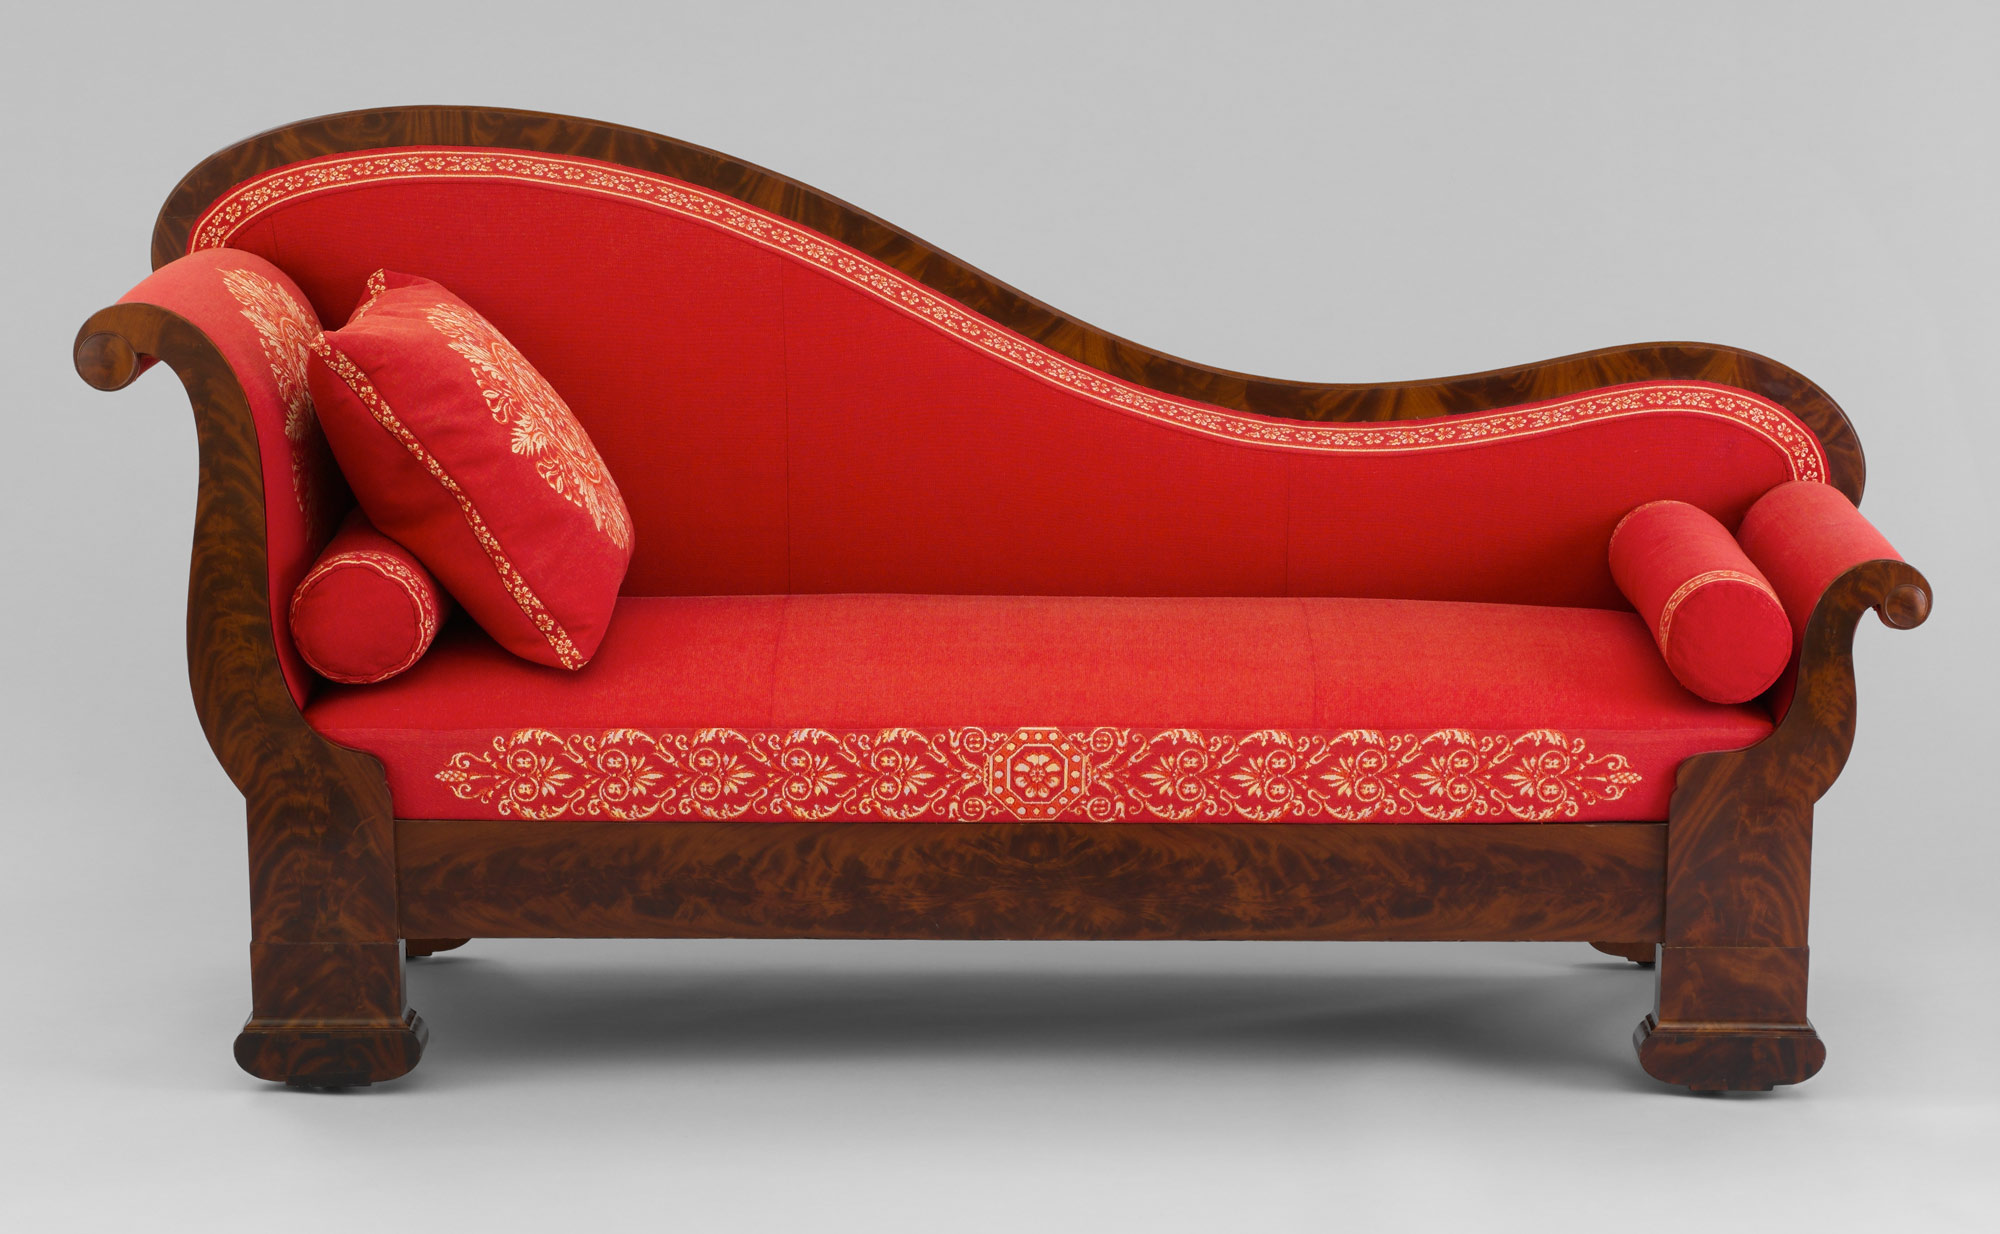 Couch Attributed to the Workshop of Duncan Phyfe